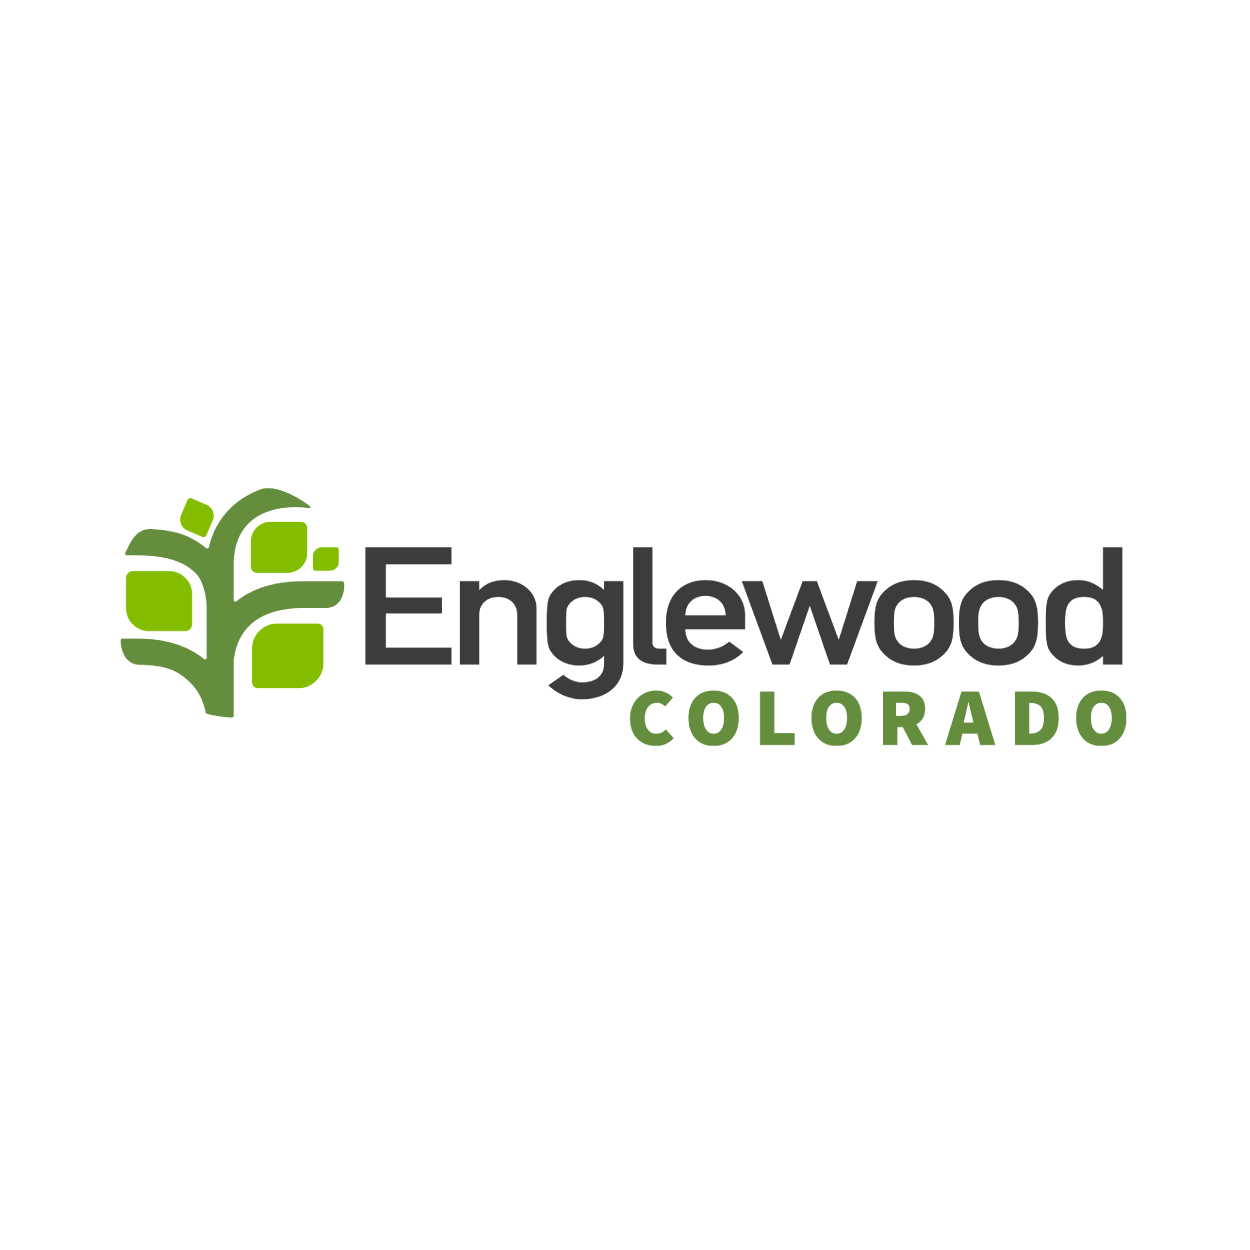 City of Englewood, CO